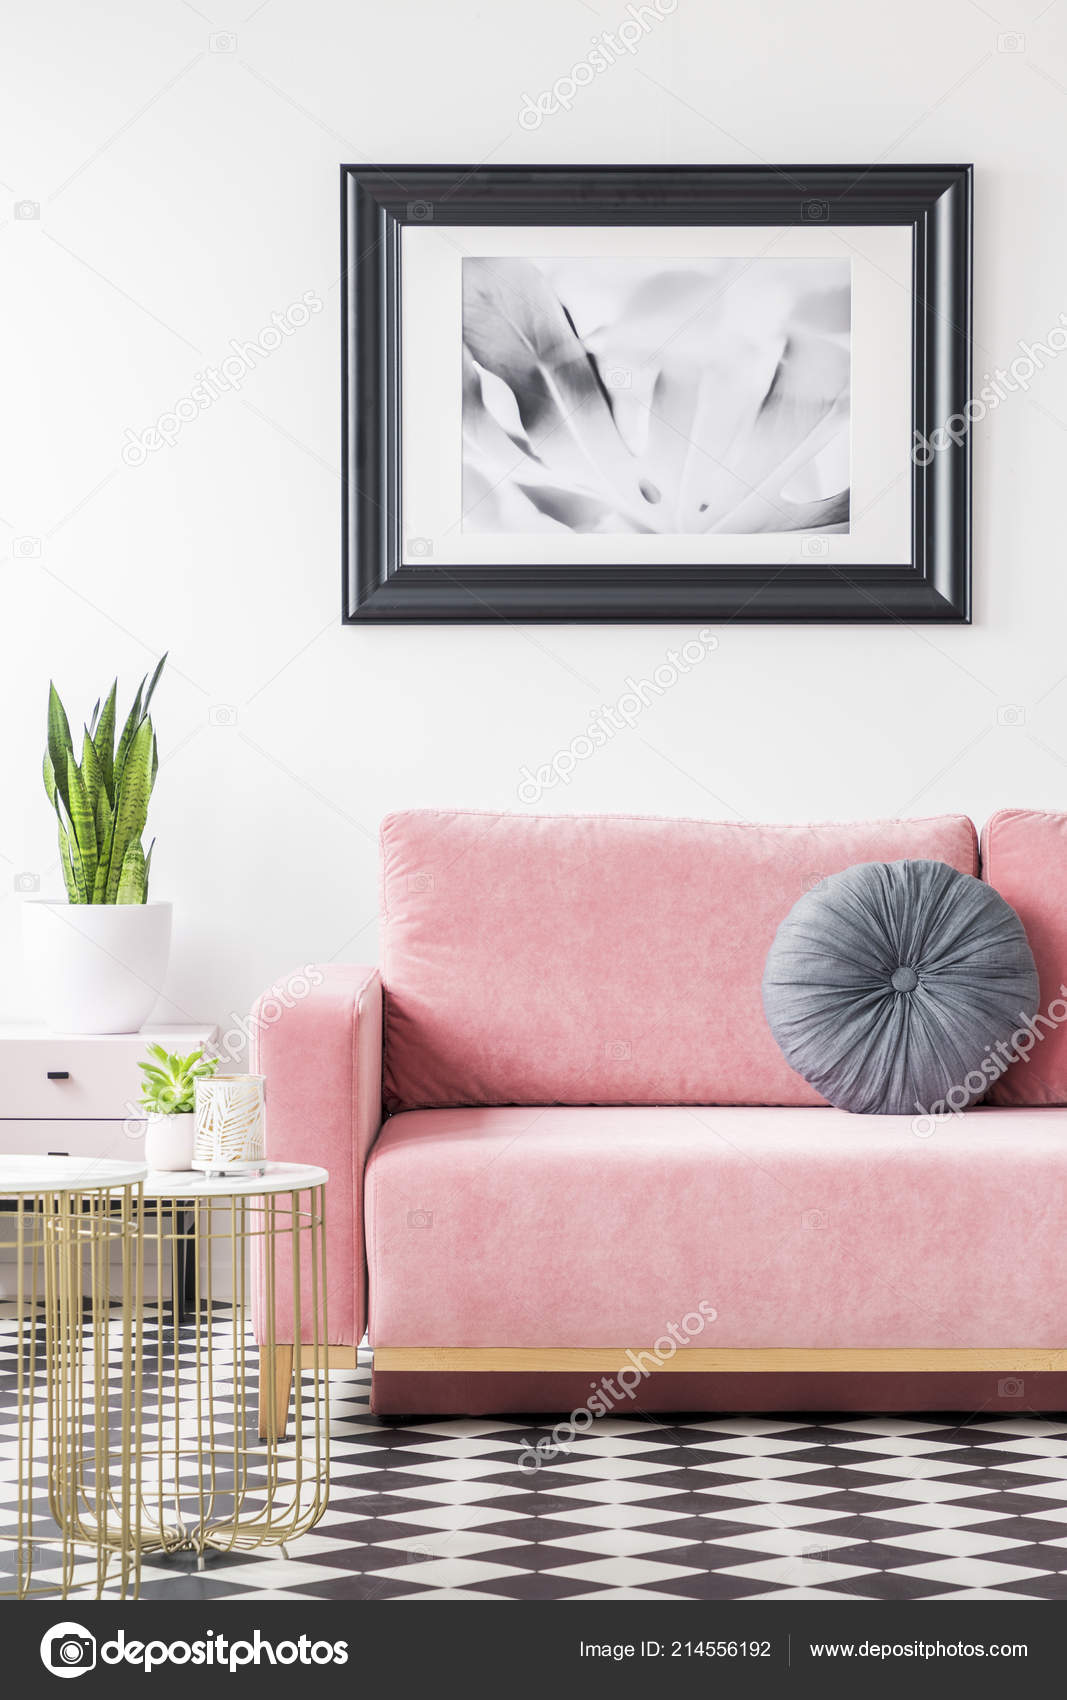 Astounding Pillow Pink Sofa Next Gold Table Plant Living Room Interior Interior Design Ideas Gentotthenellocom